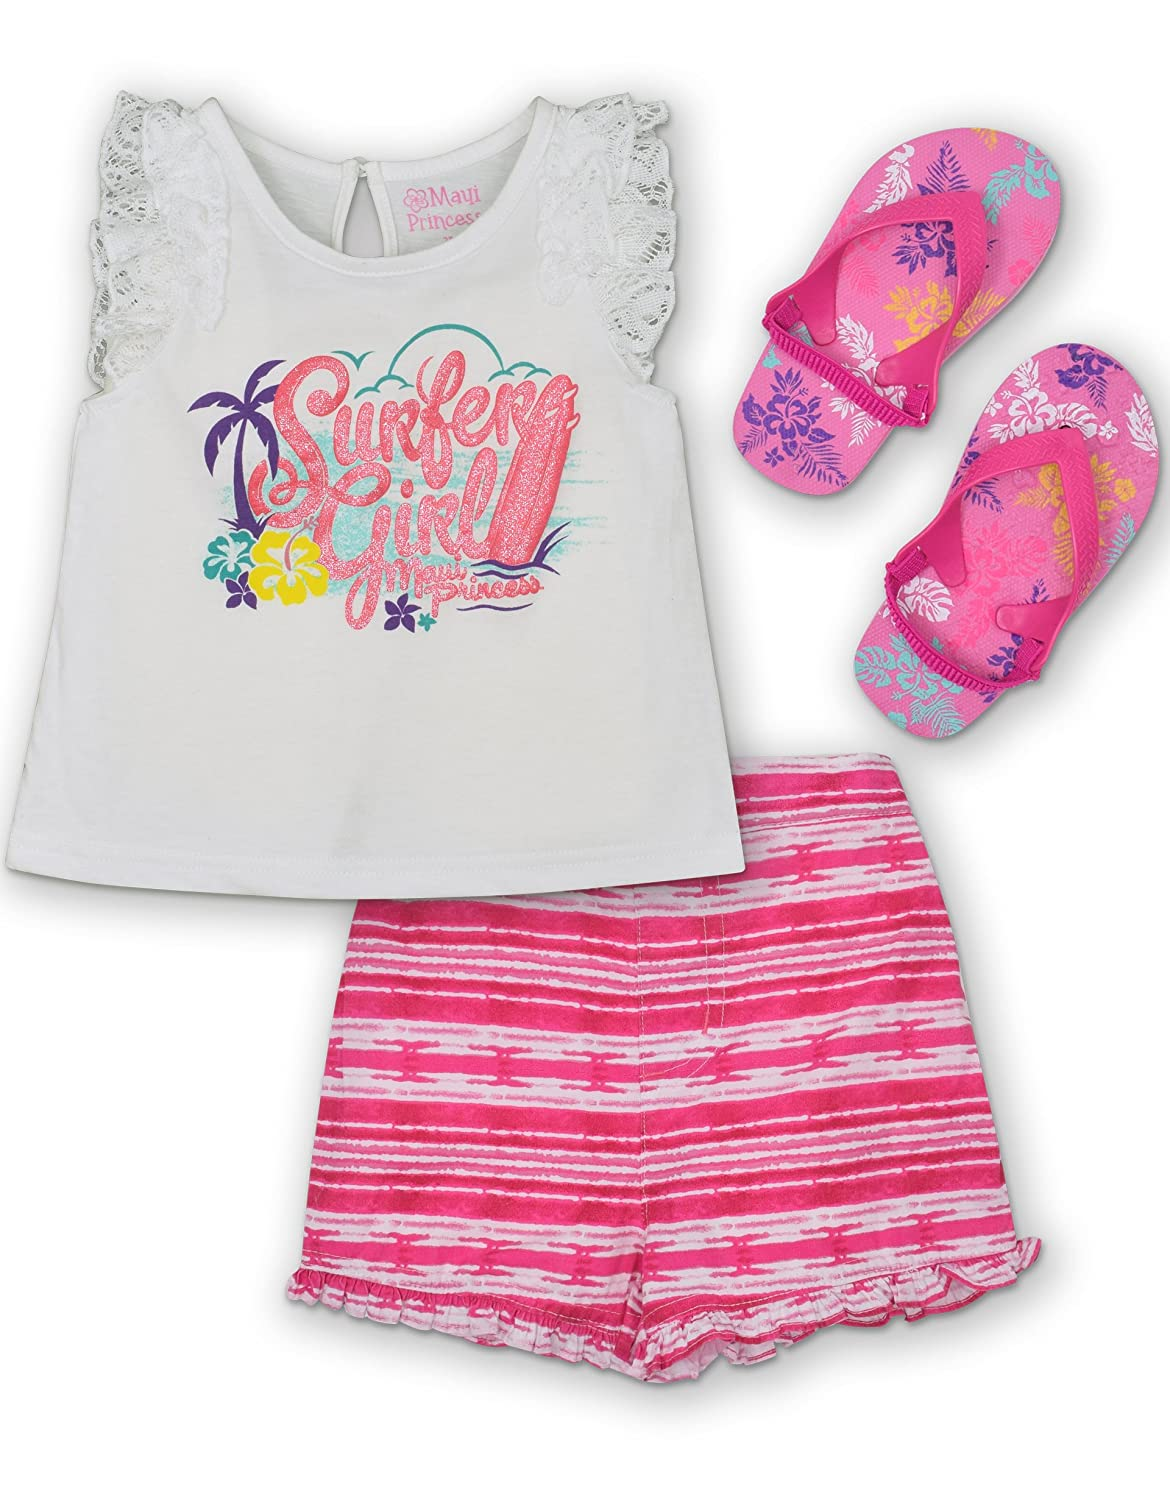 Maui & Sons Toddler Girls' 3 Piece Set: Ruffle Tank Top, Shorts and Flip Flops